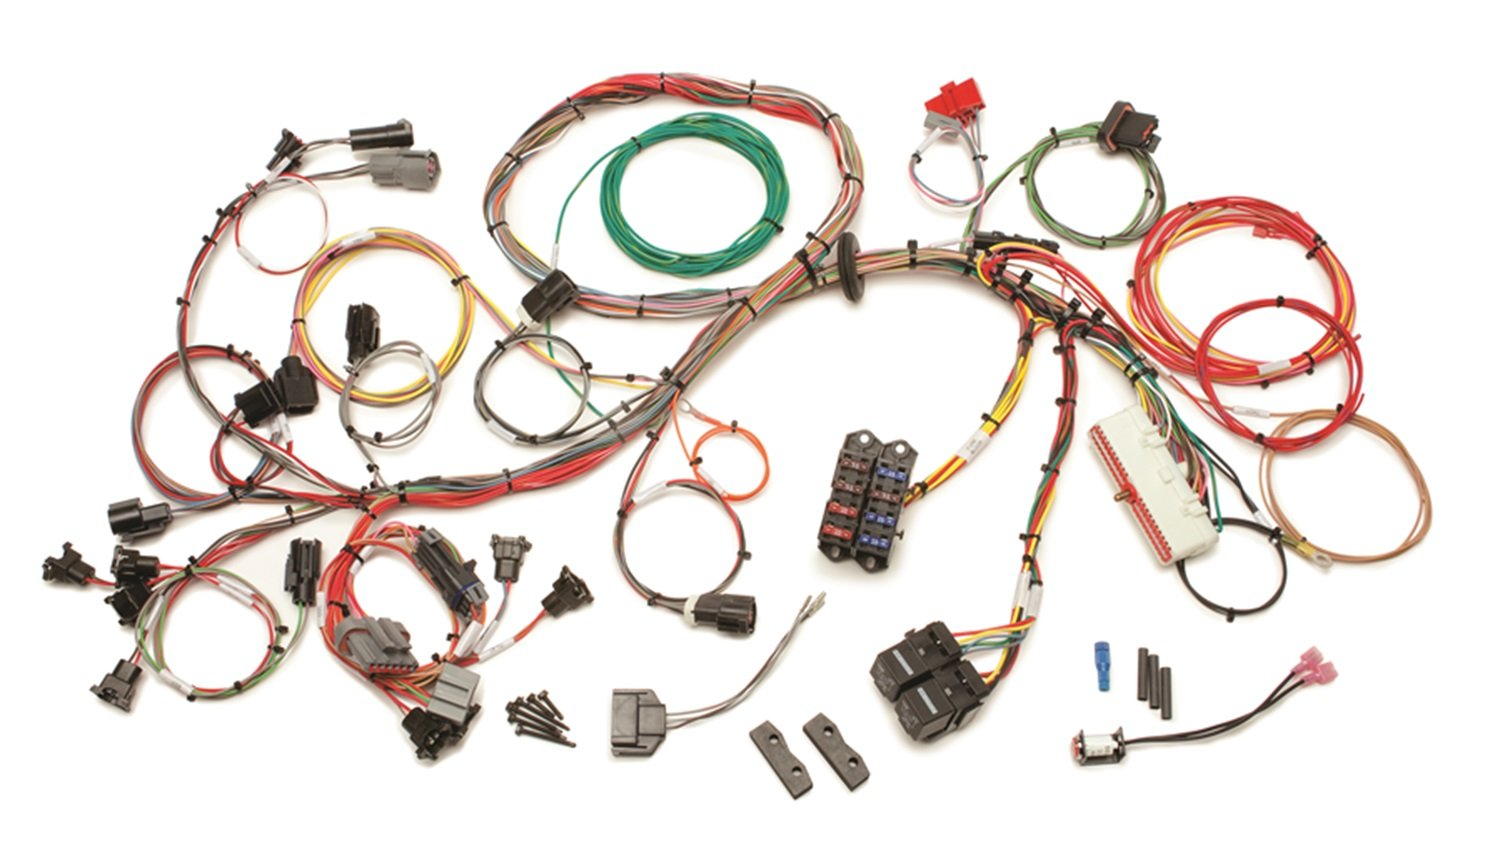 71UX1IBfleL._SL1500_ amazon com painless 60510 5 0l wiring harness automotive electrical wiring harness at gsmportal.co